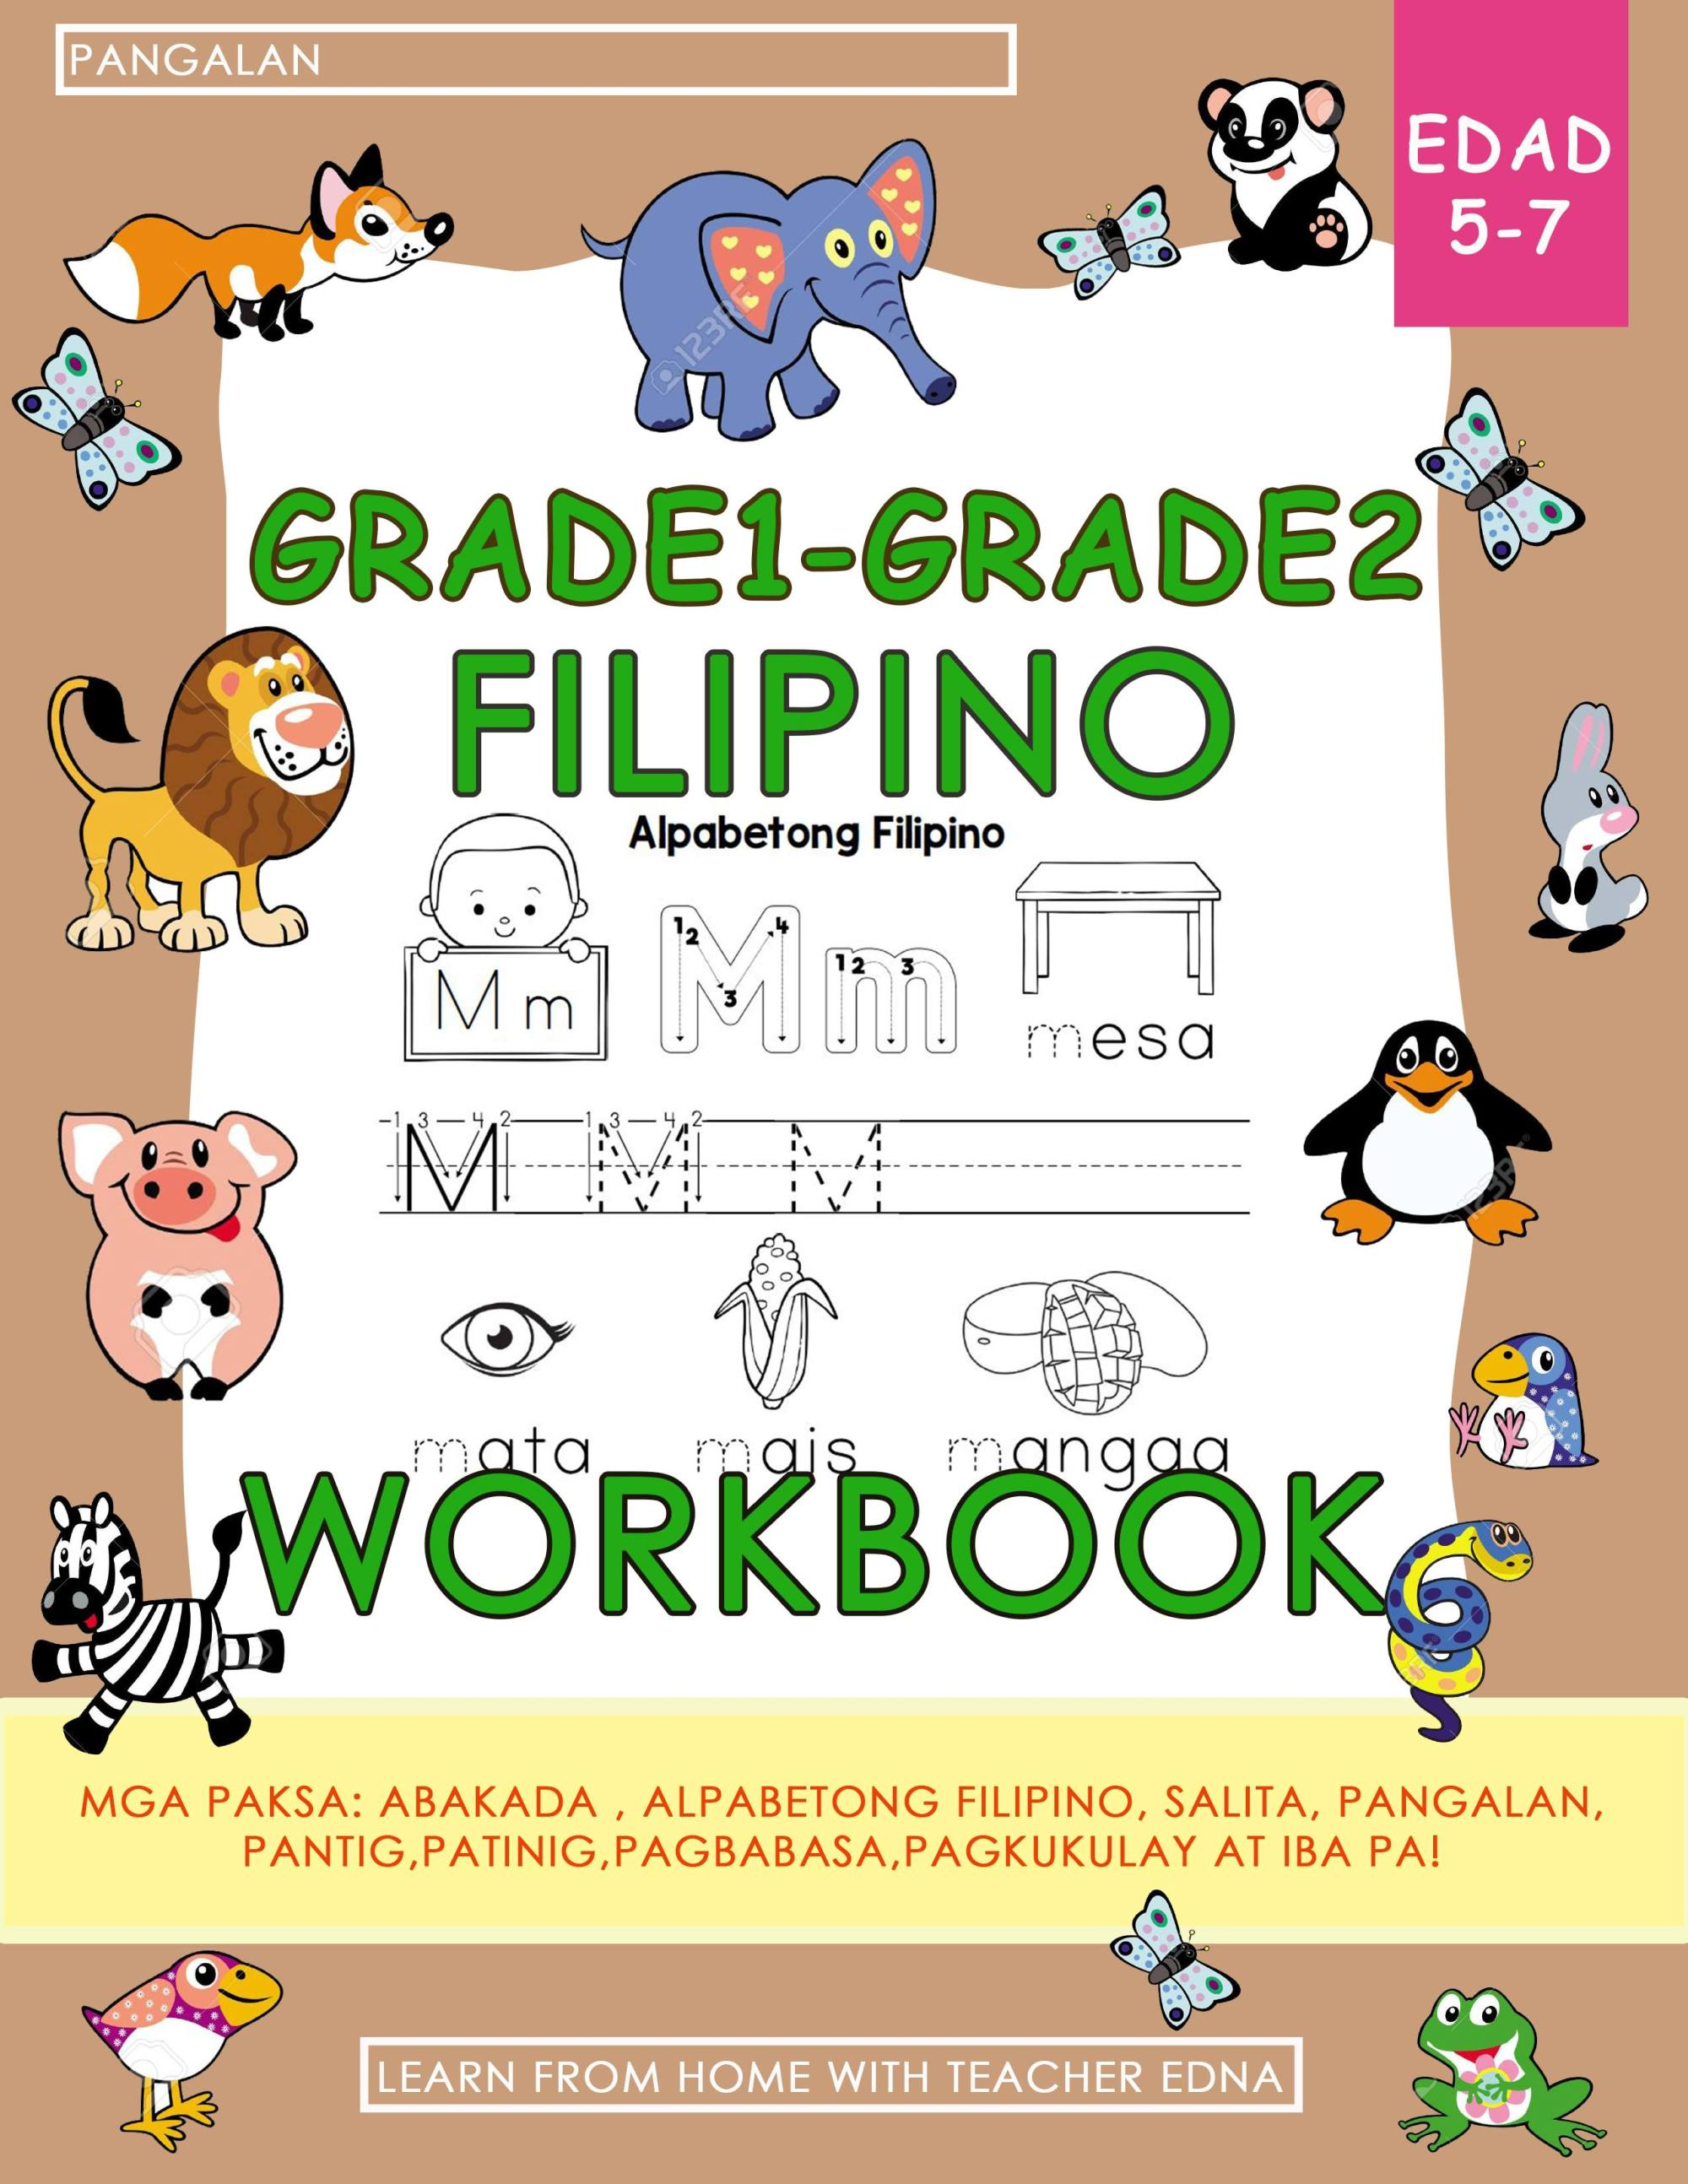 hight resolution of Grade1 - Grade2 FILIPINO WORKBOOK   Lazada PH